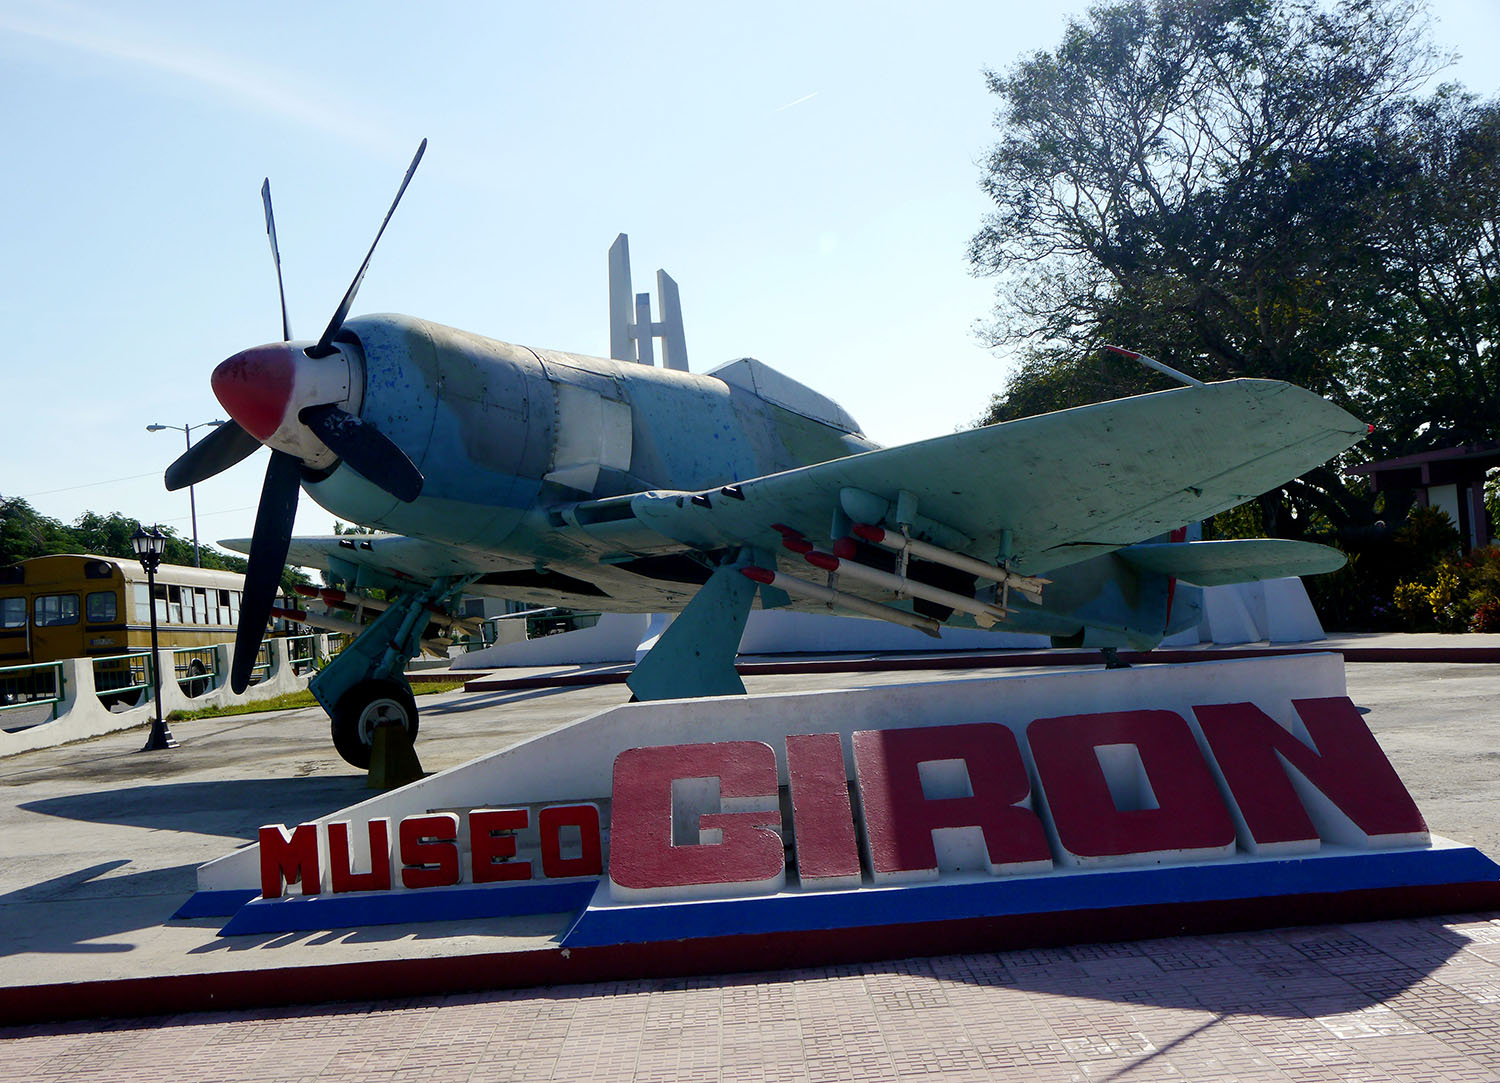 A plane and museum sign.